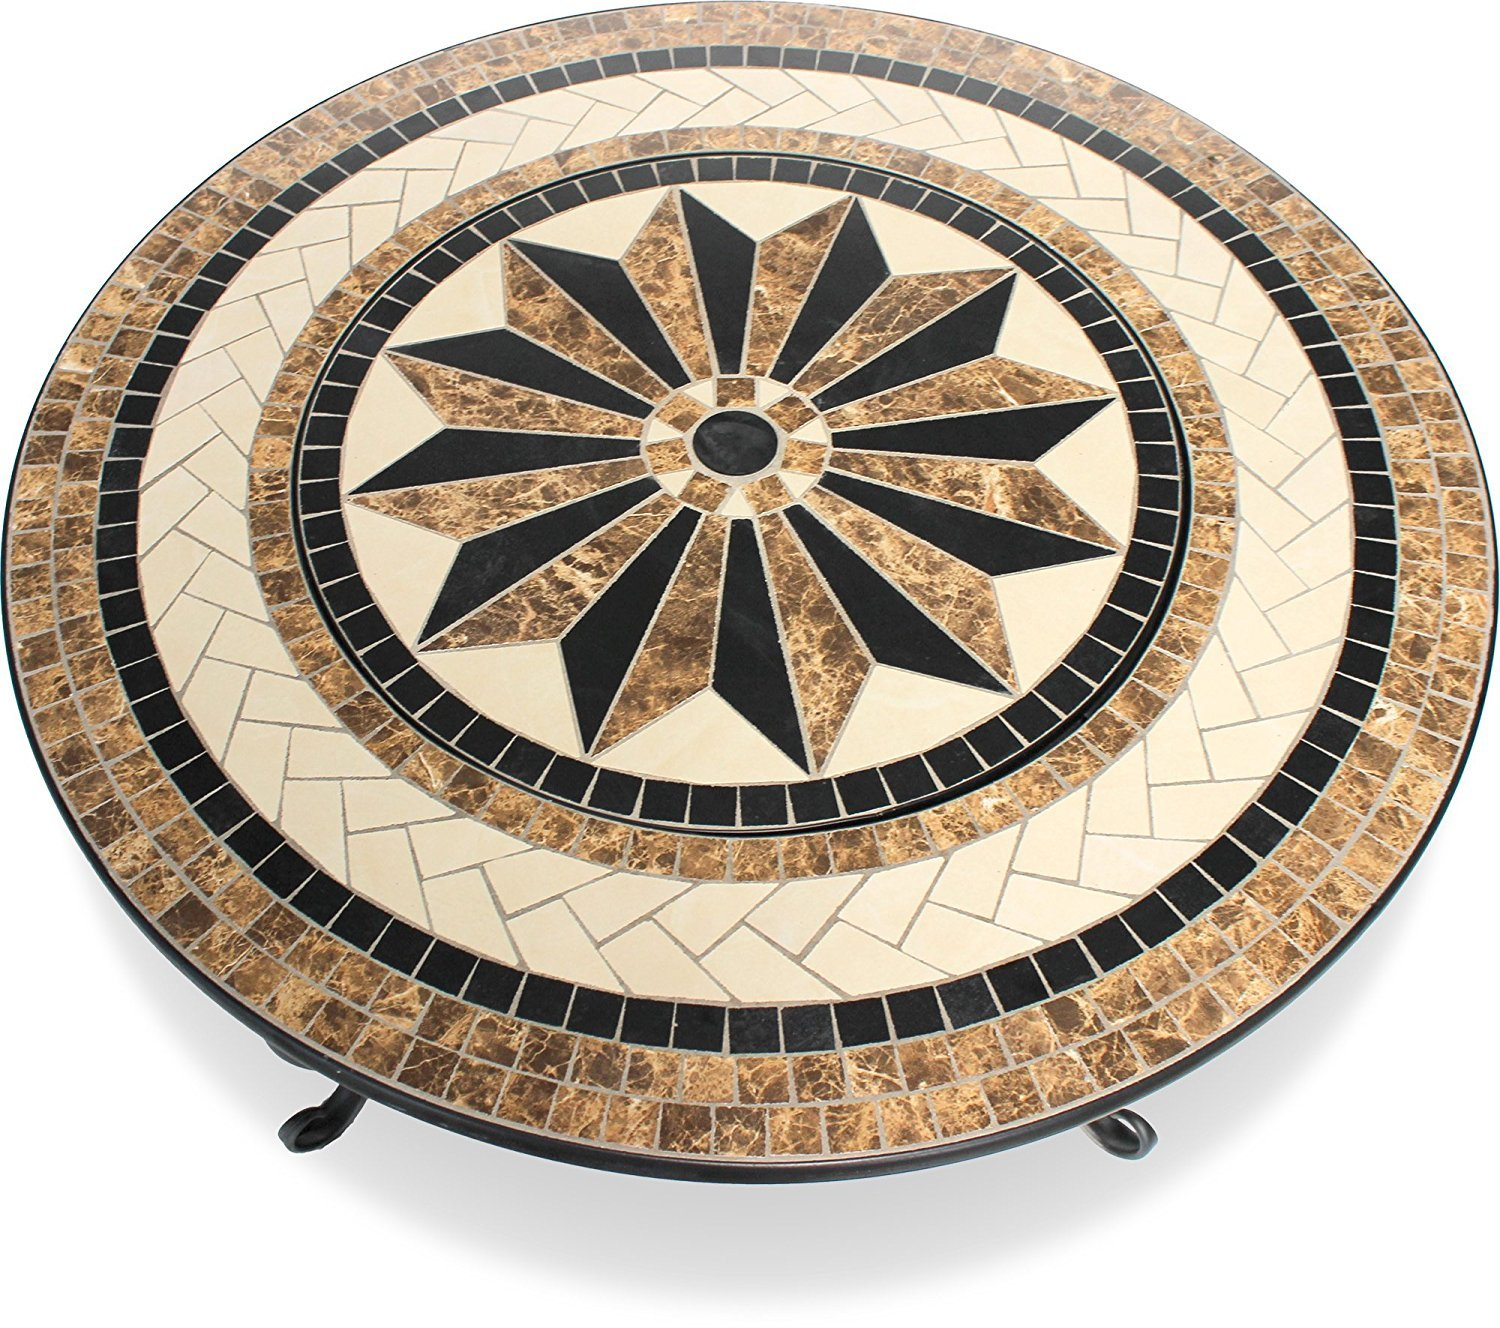 Centurion Supports Fireology TOPANGA Garden Heater/Fire Pit/Coffee Table/Barbecue/Ice Bucket – Ceramic Finish